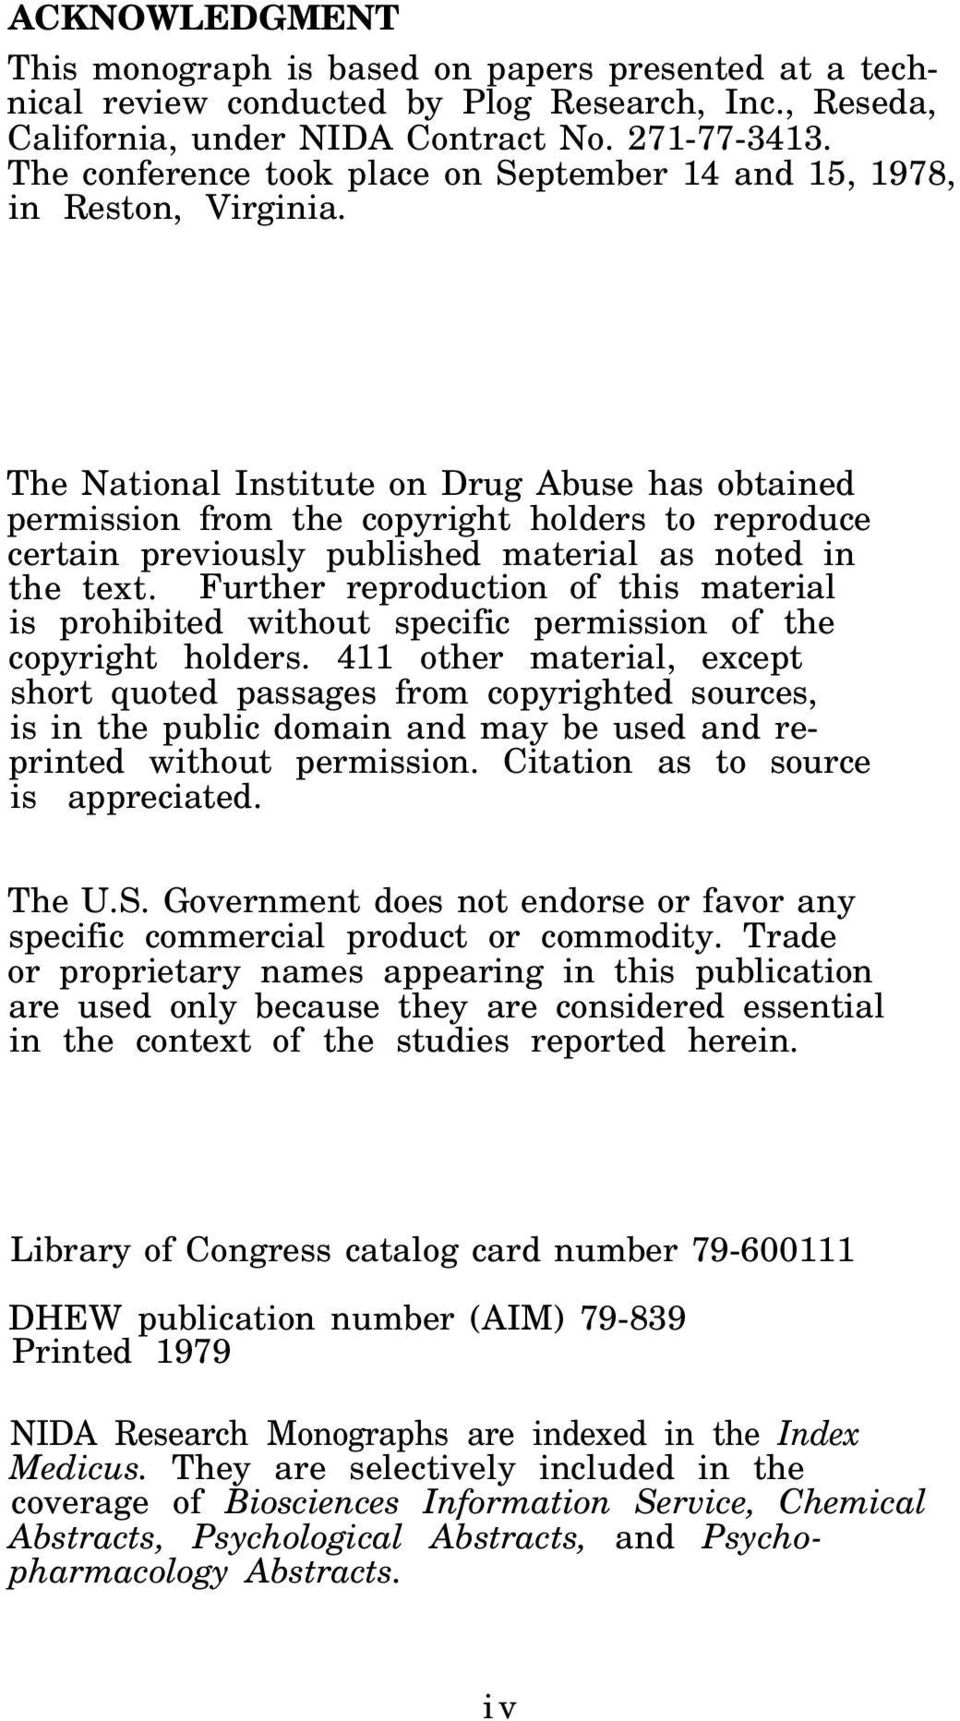 The National Institute on Drug Abuse has obtained permission from the copyright holders to reproduce certain previously published material as noted in the text.